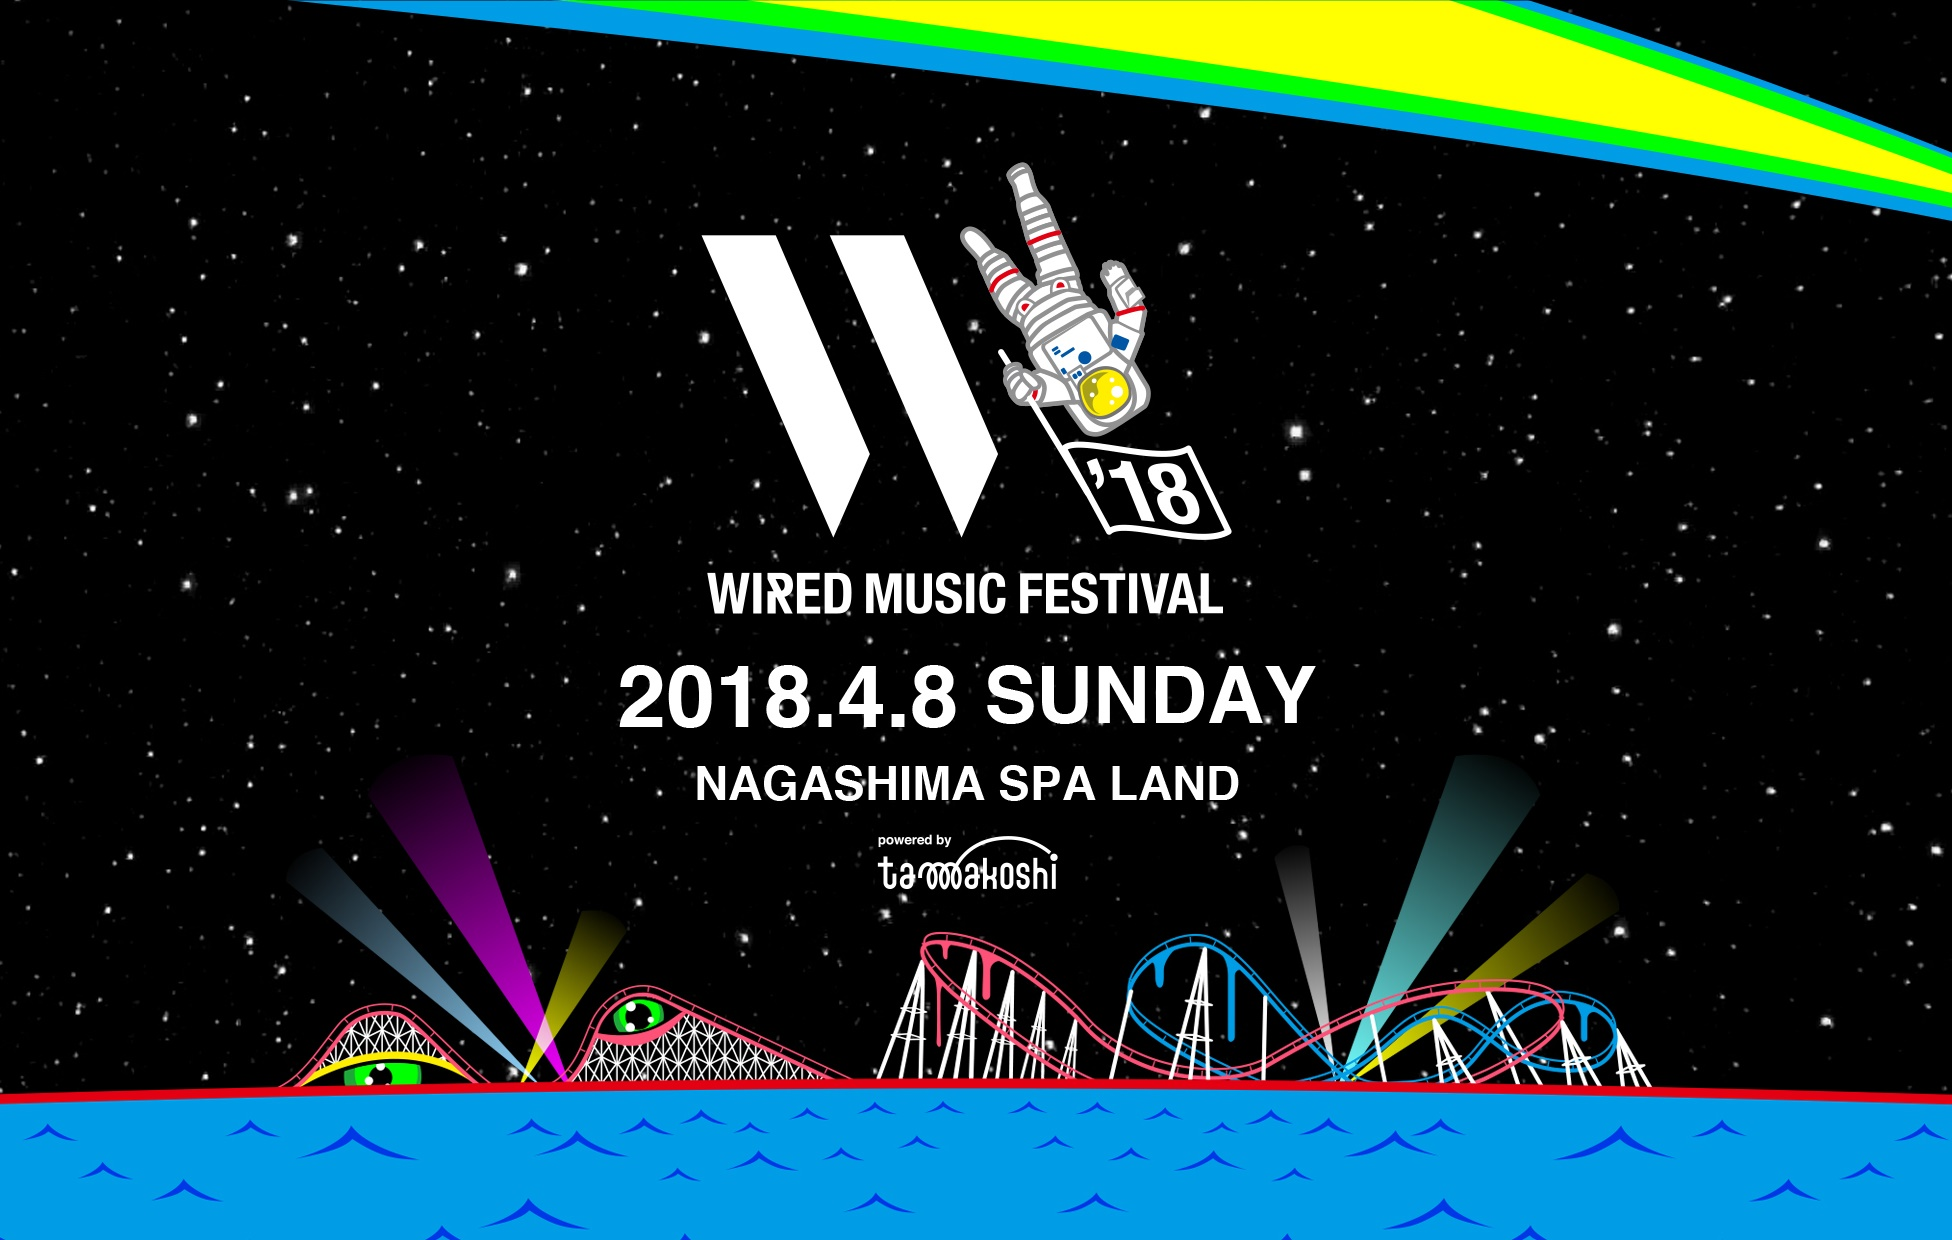 WIRED MUSIC FESTIVAL 2018 出展決定!!